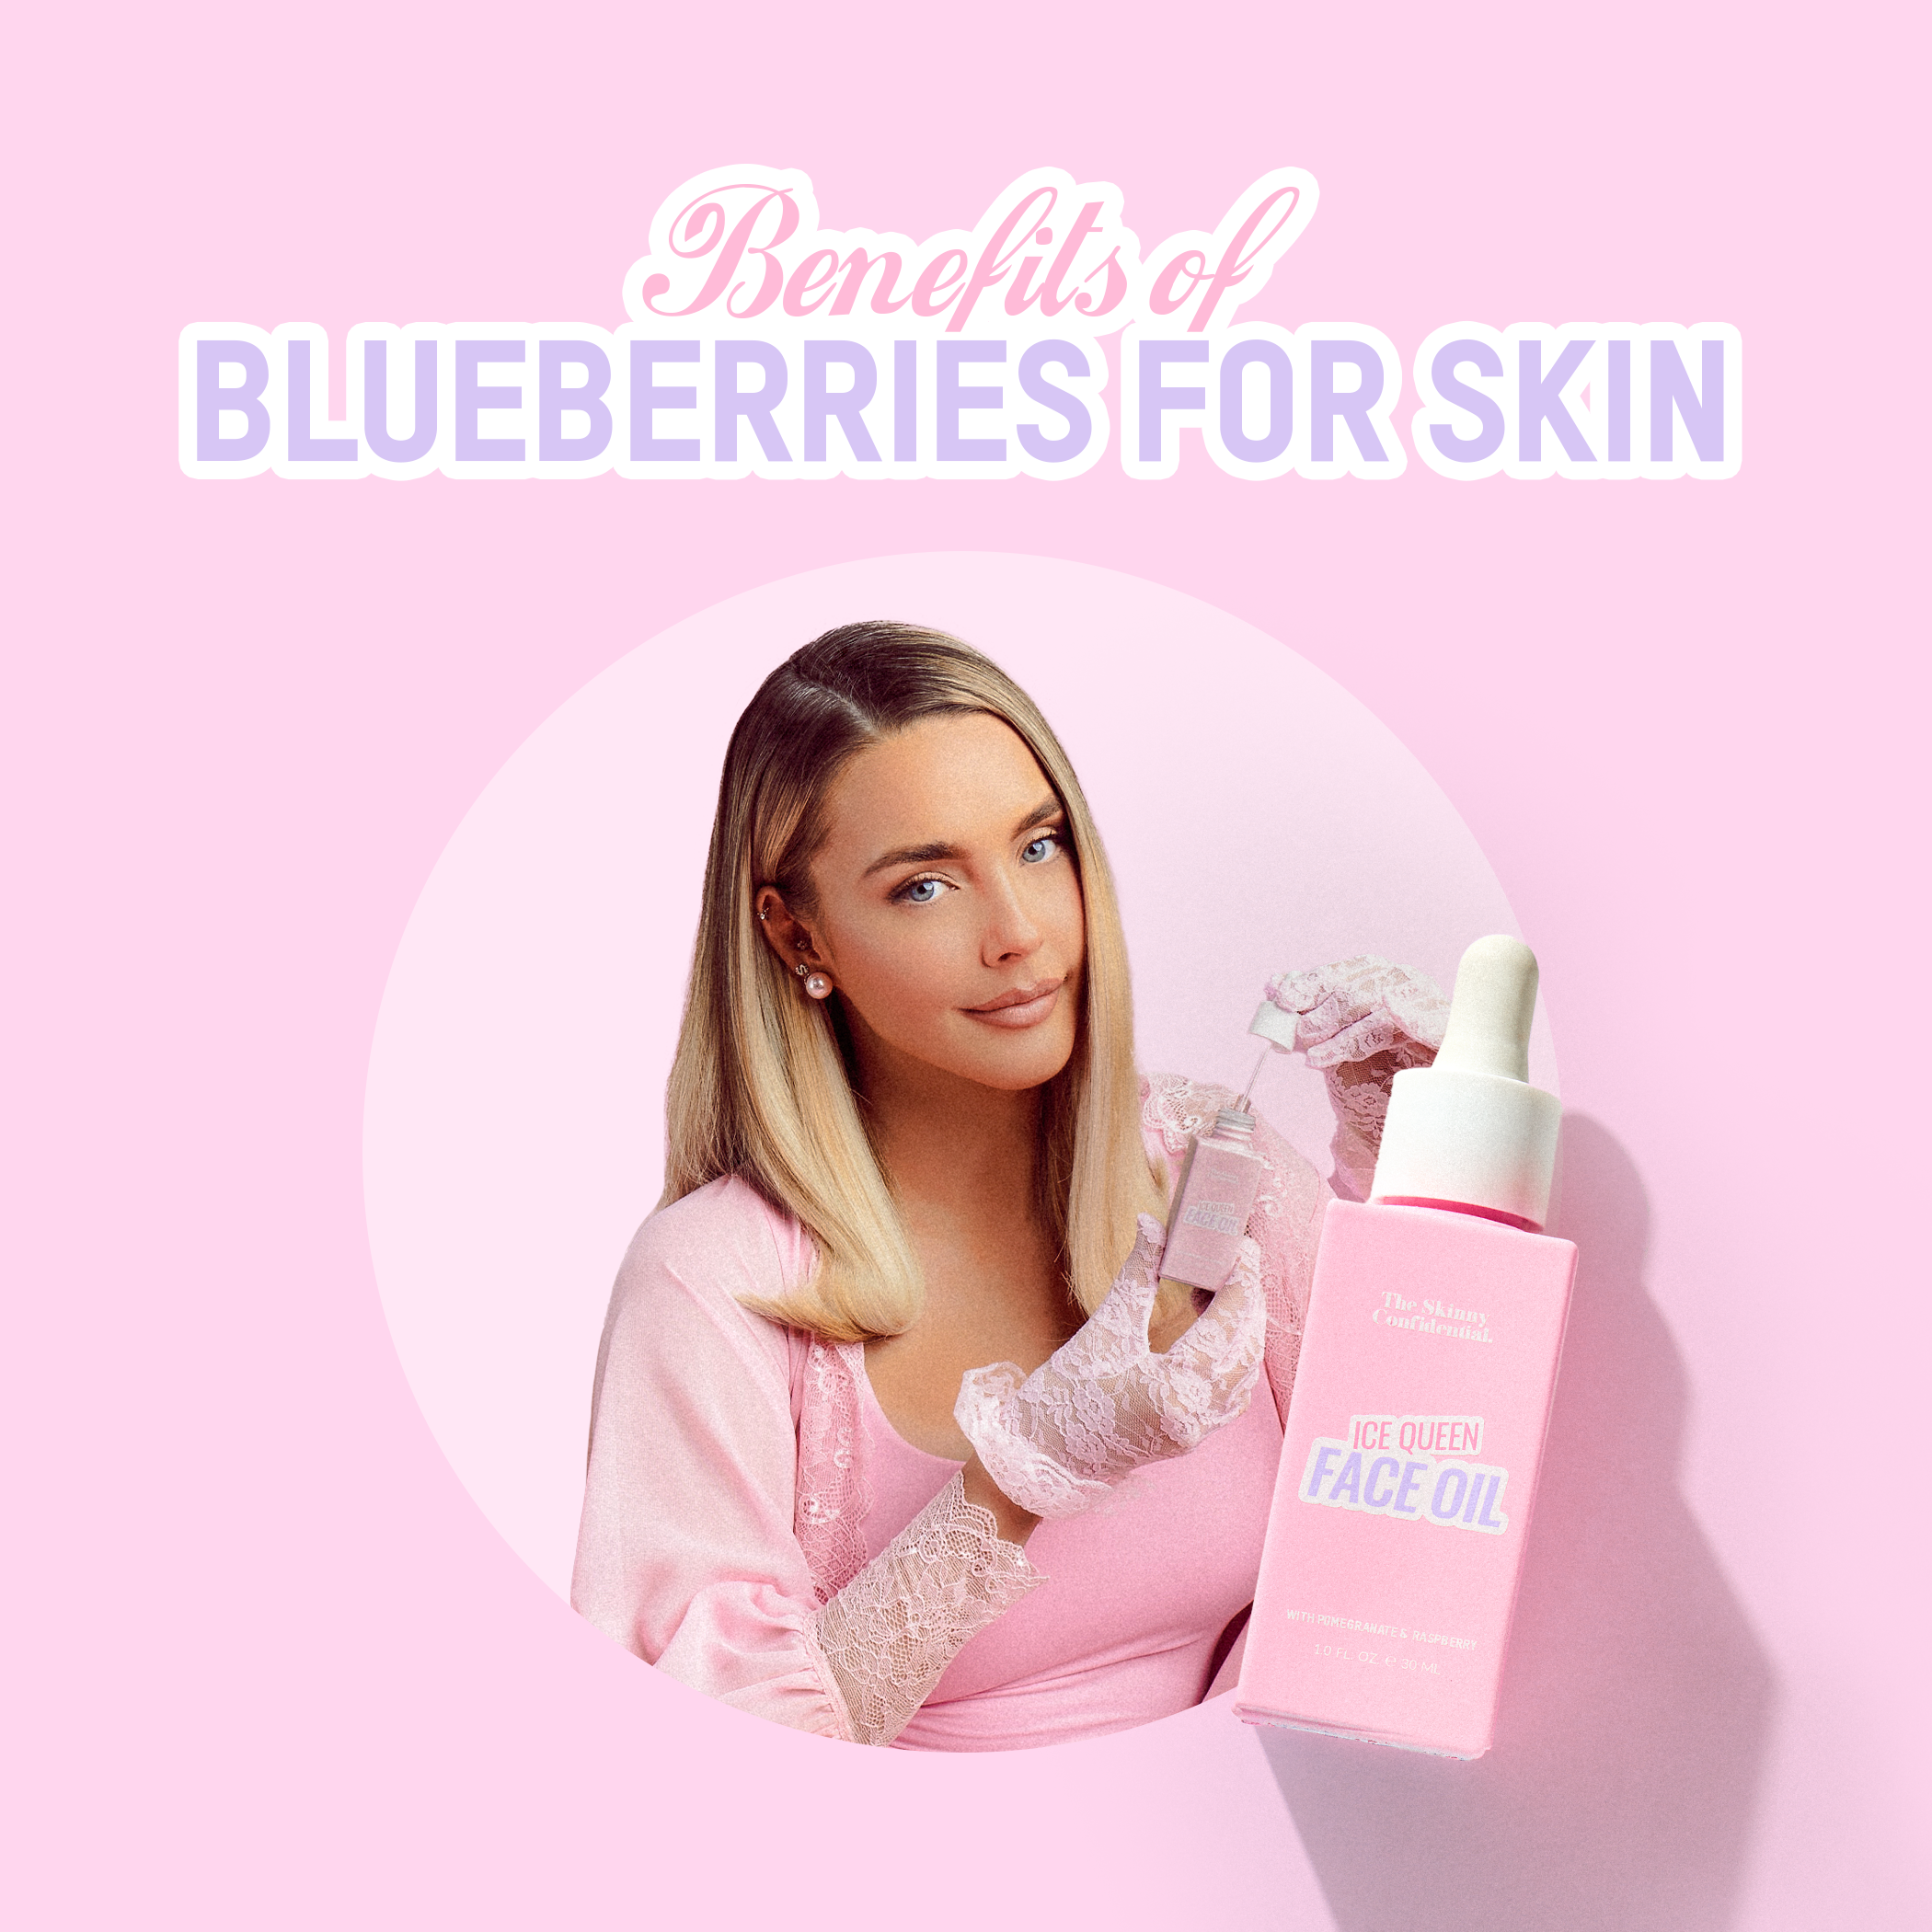 The Benefits of Blueberries for the Skin